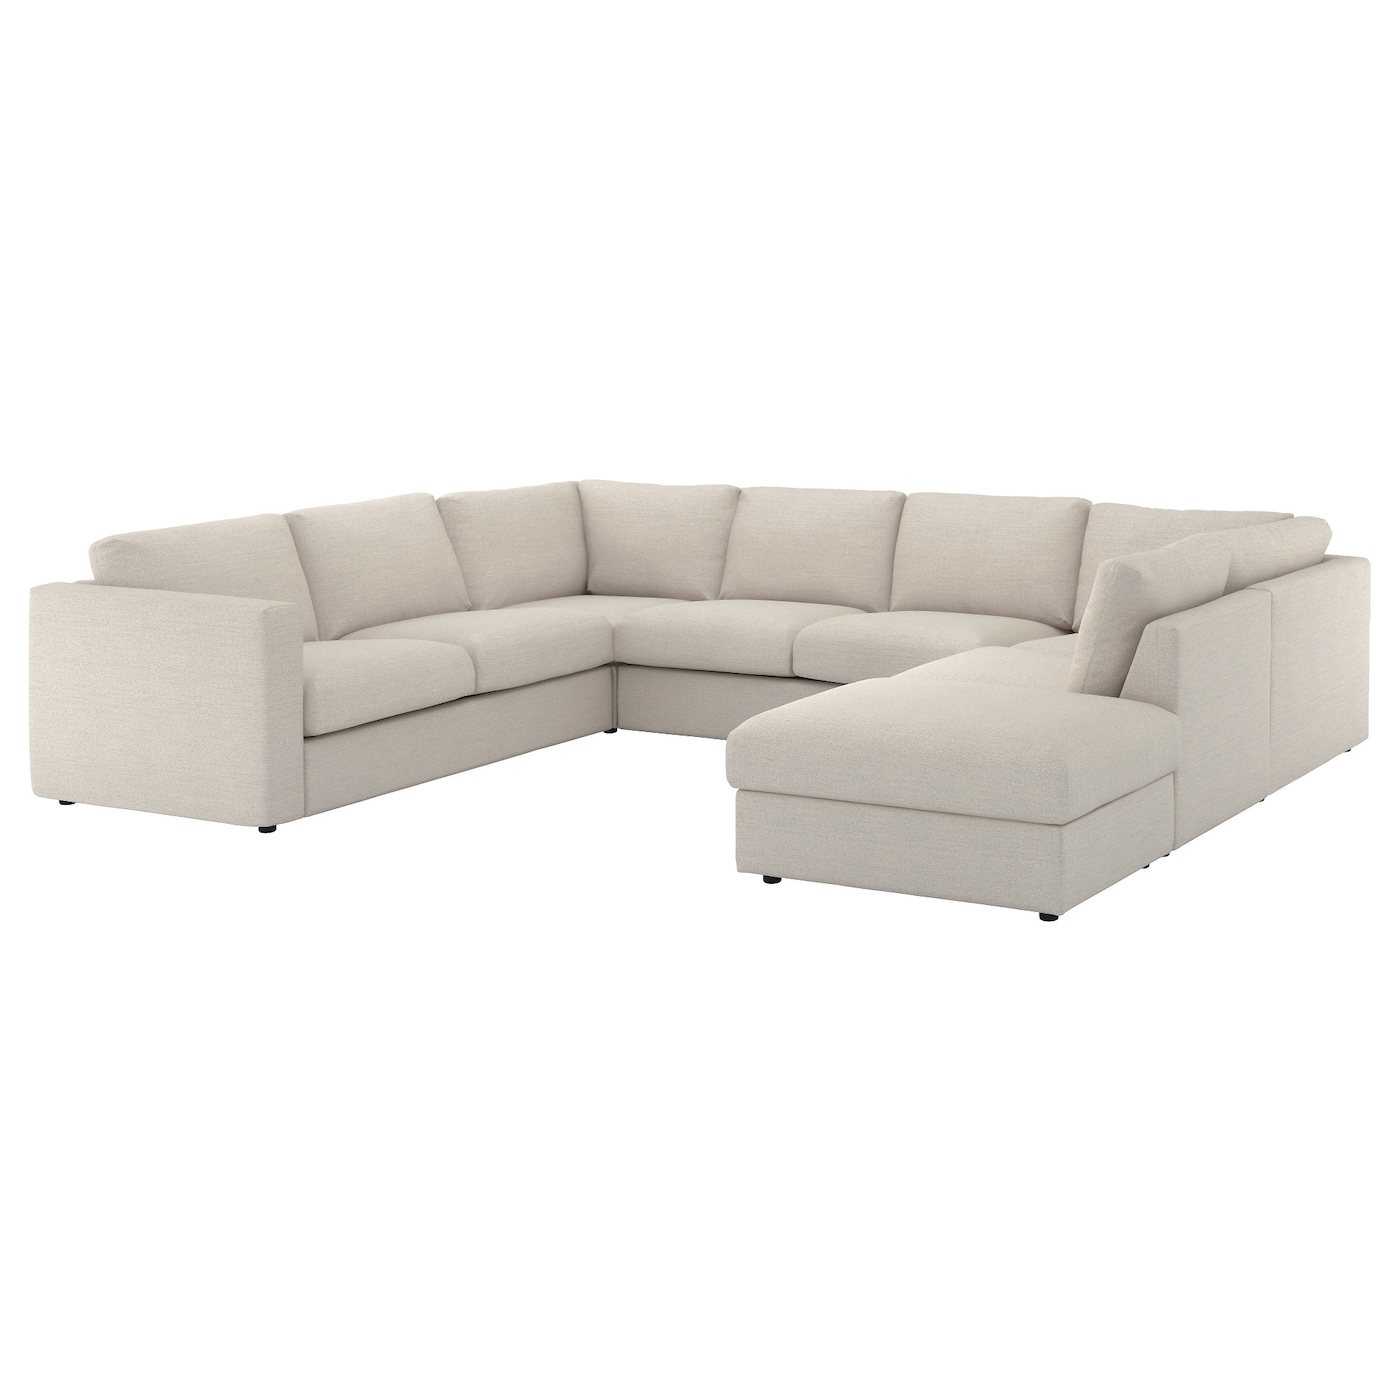 vimle u shaped sofa 6 seat with open end gunnared beige ikea. Black Bedroom Furniture Sets. Home Design Ideas